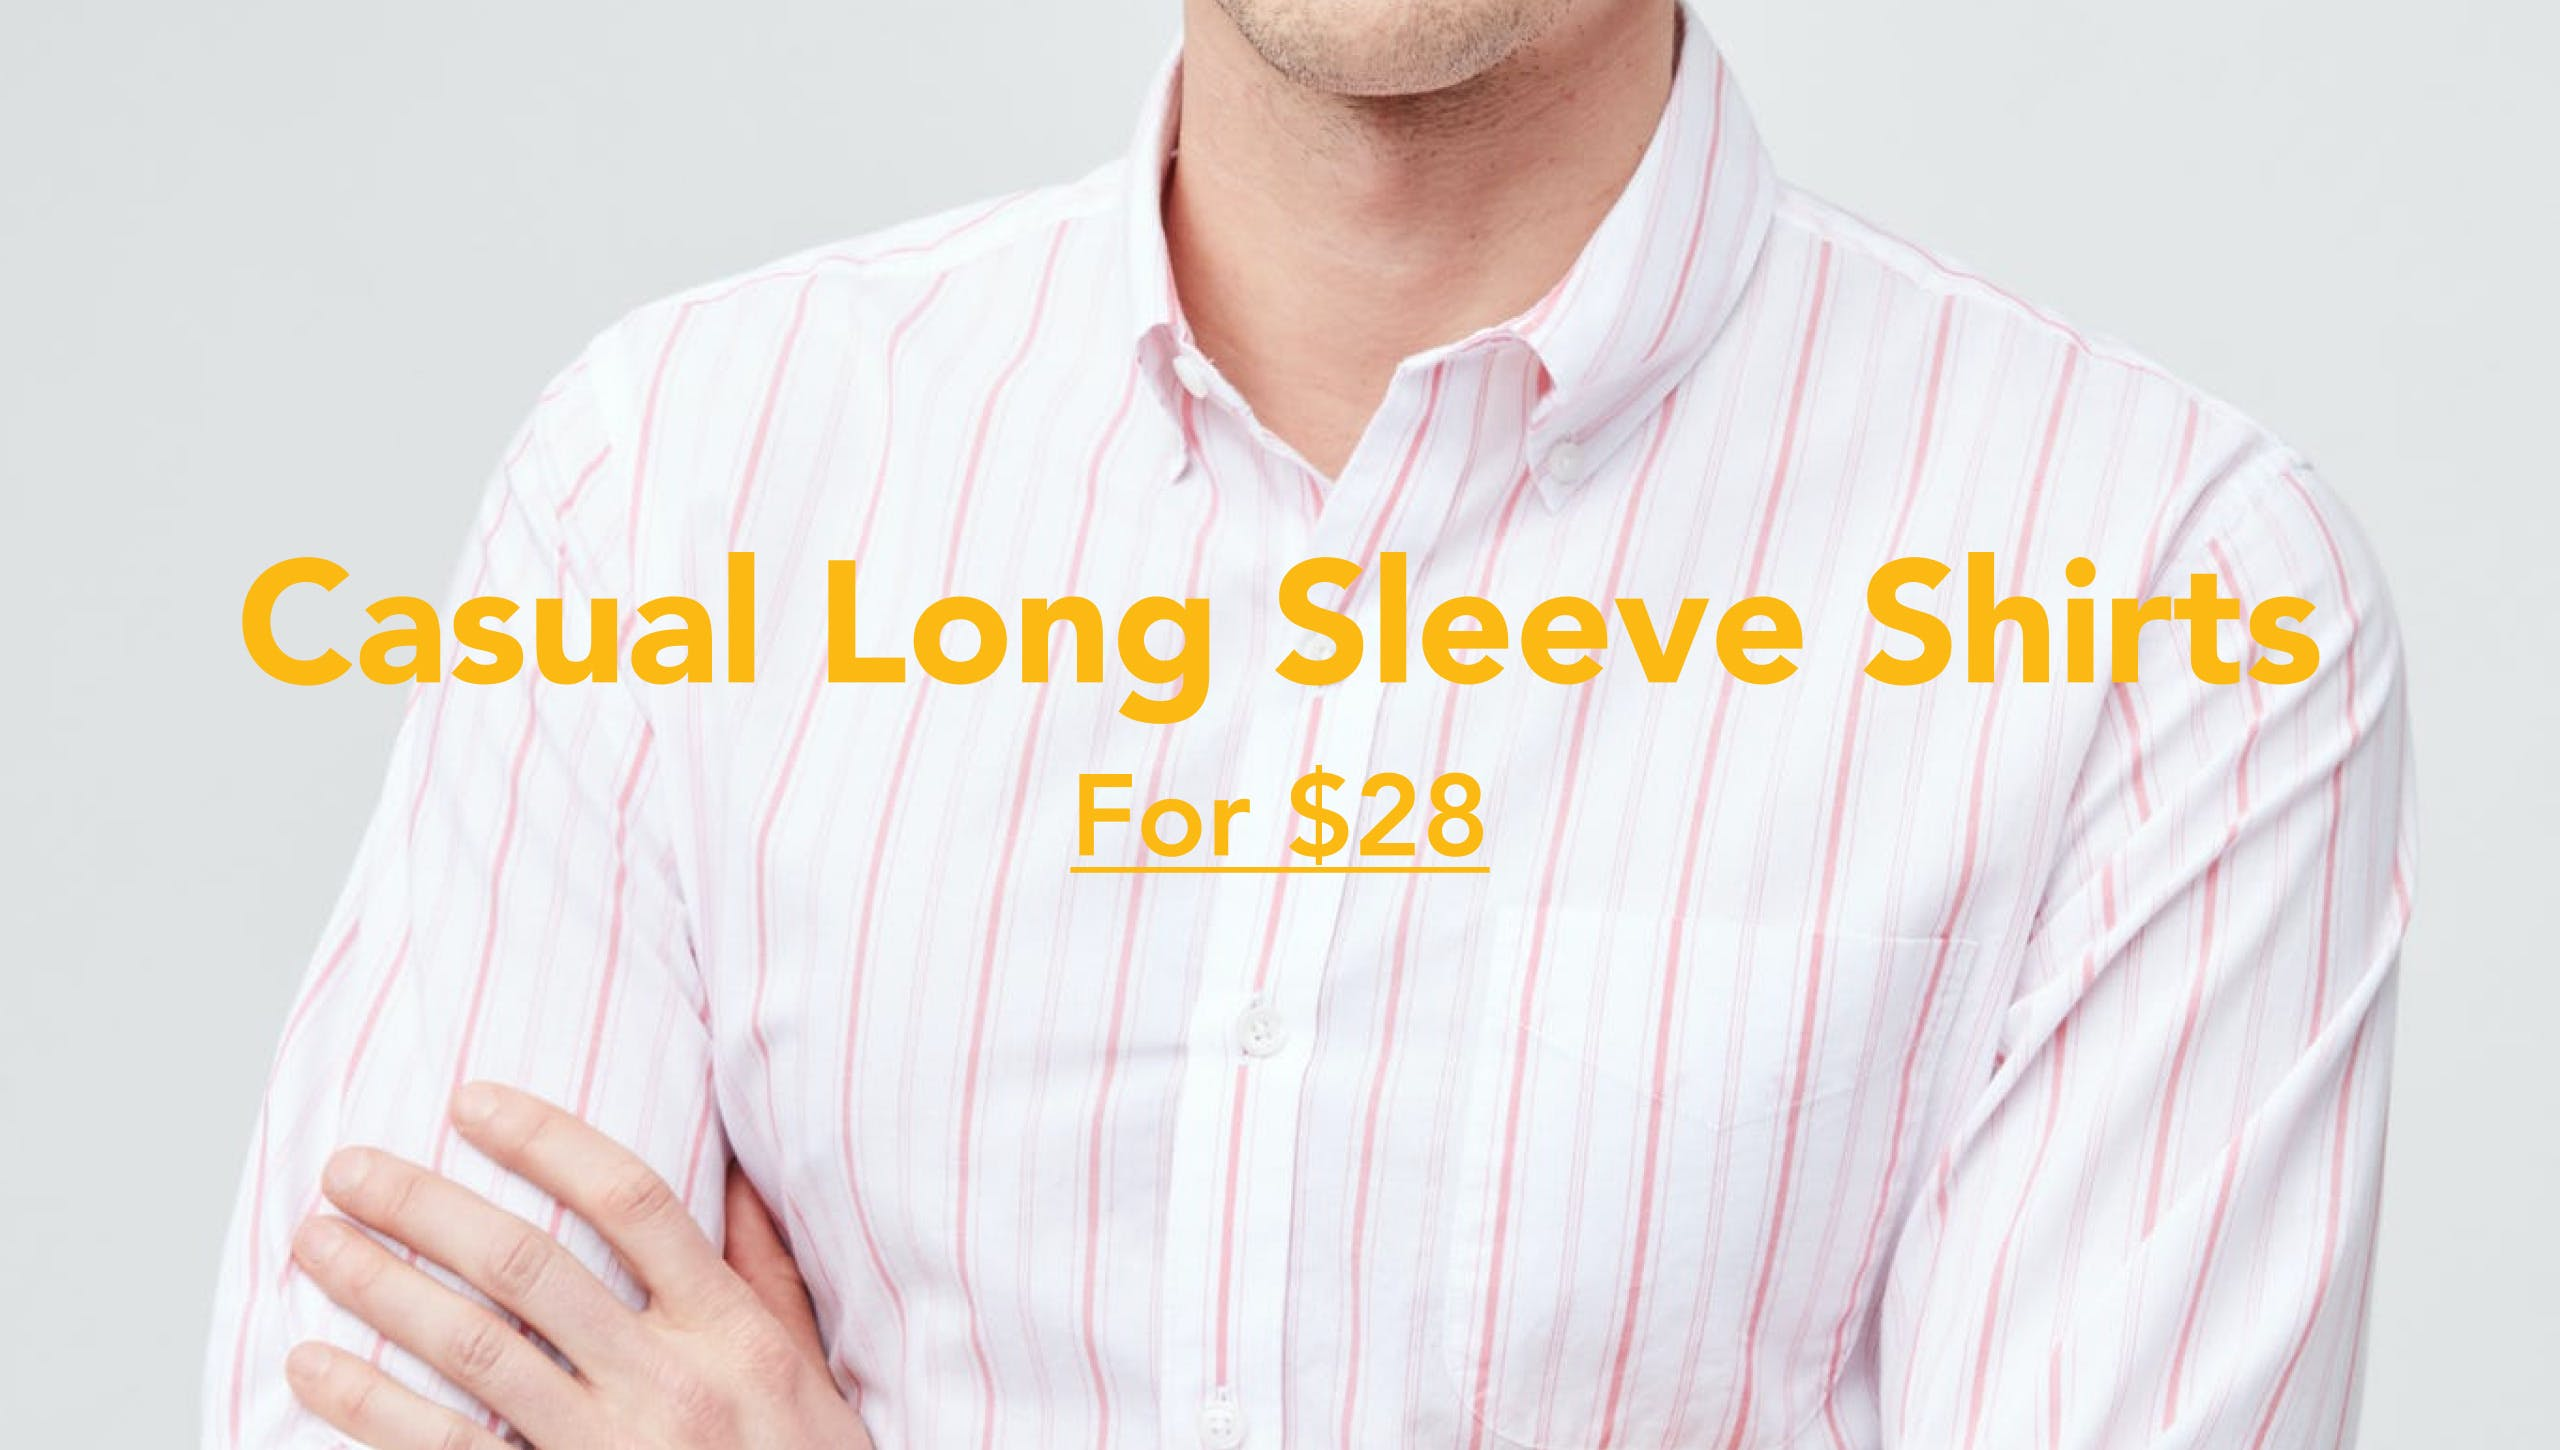 Casual Long Sleeve Shirts For $28